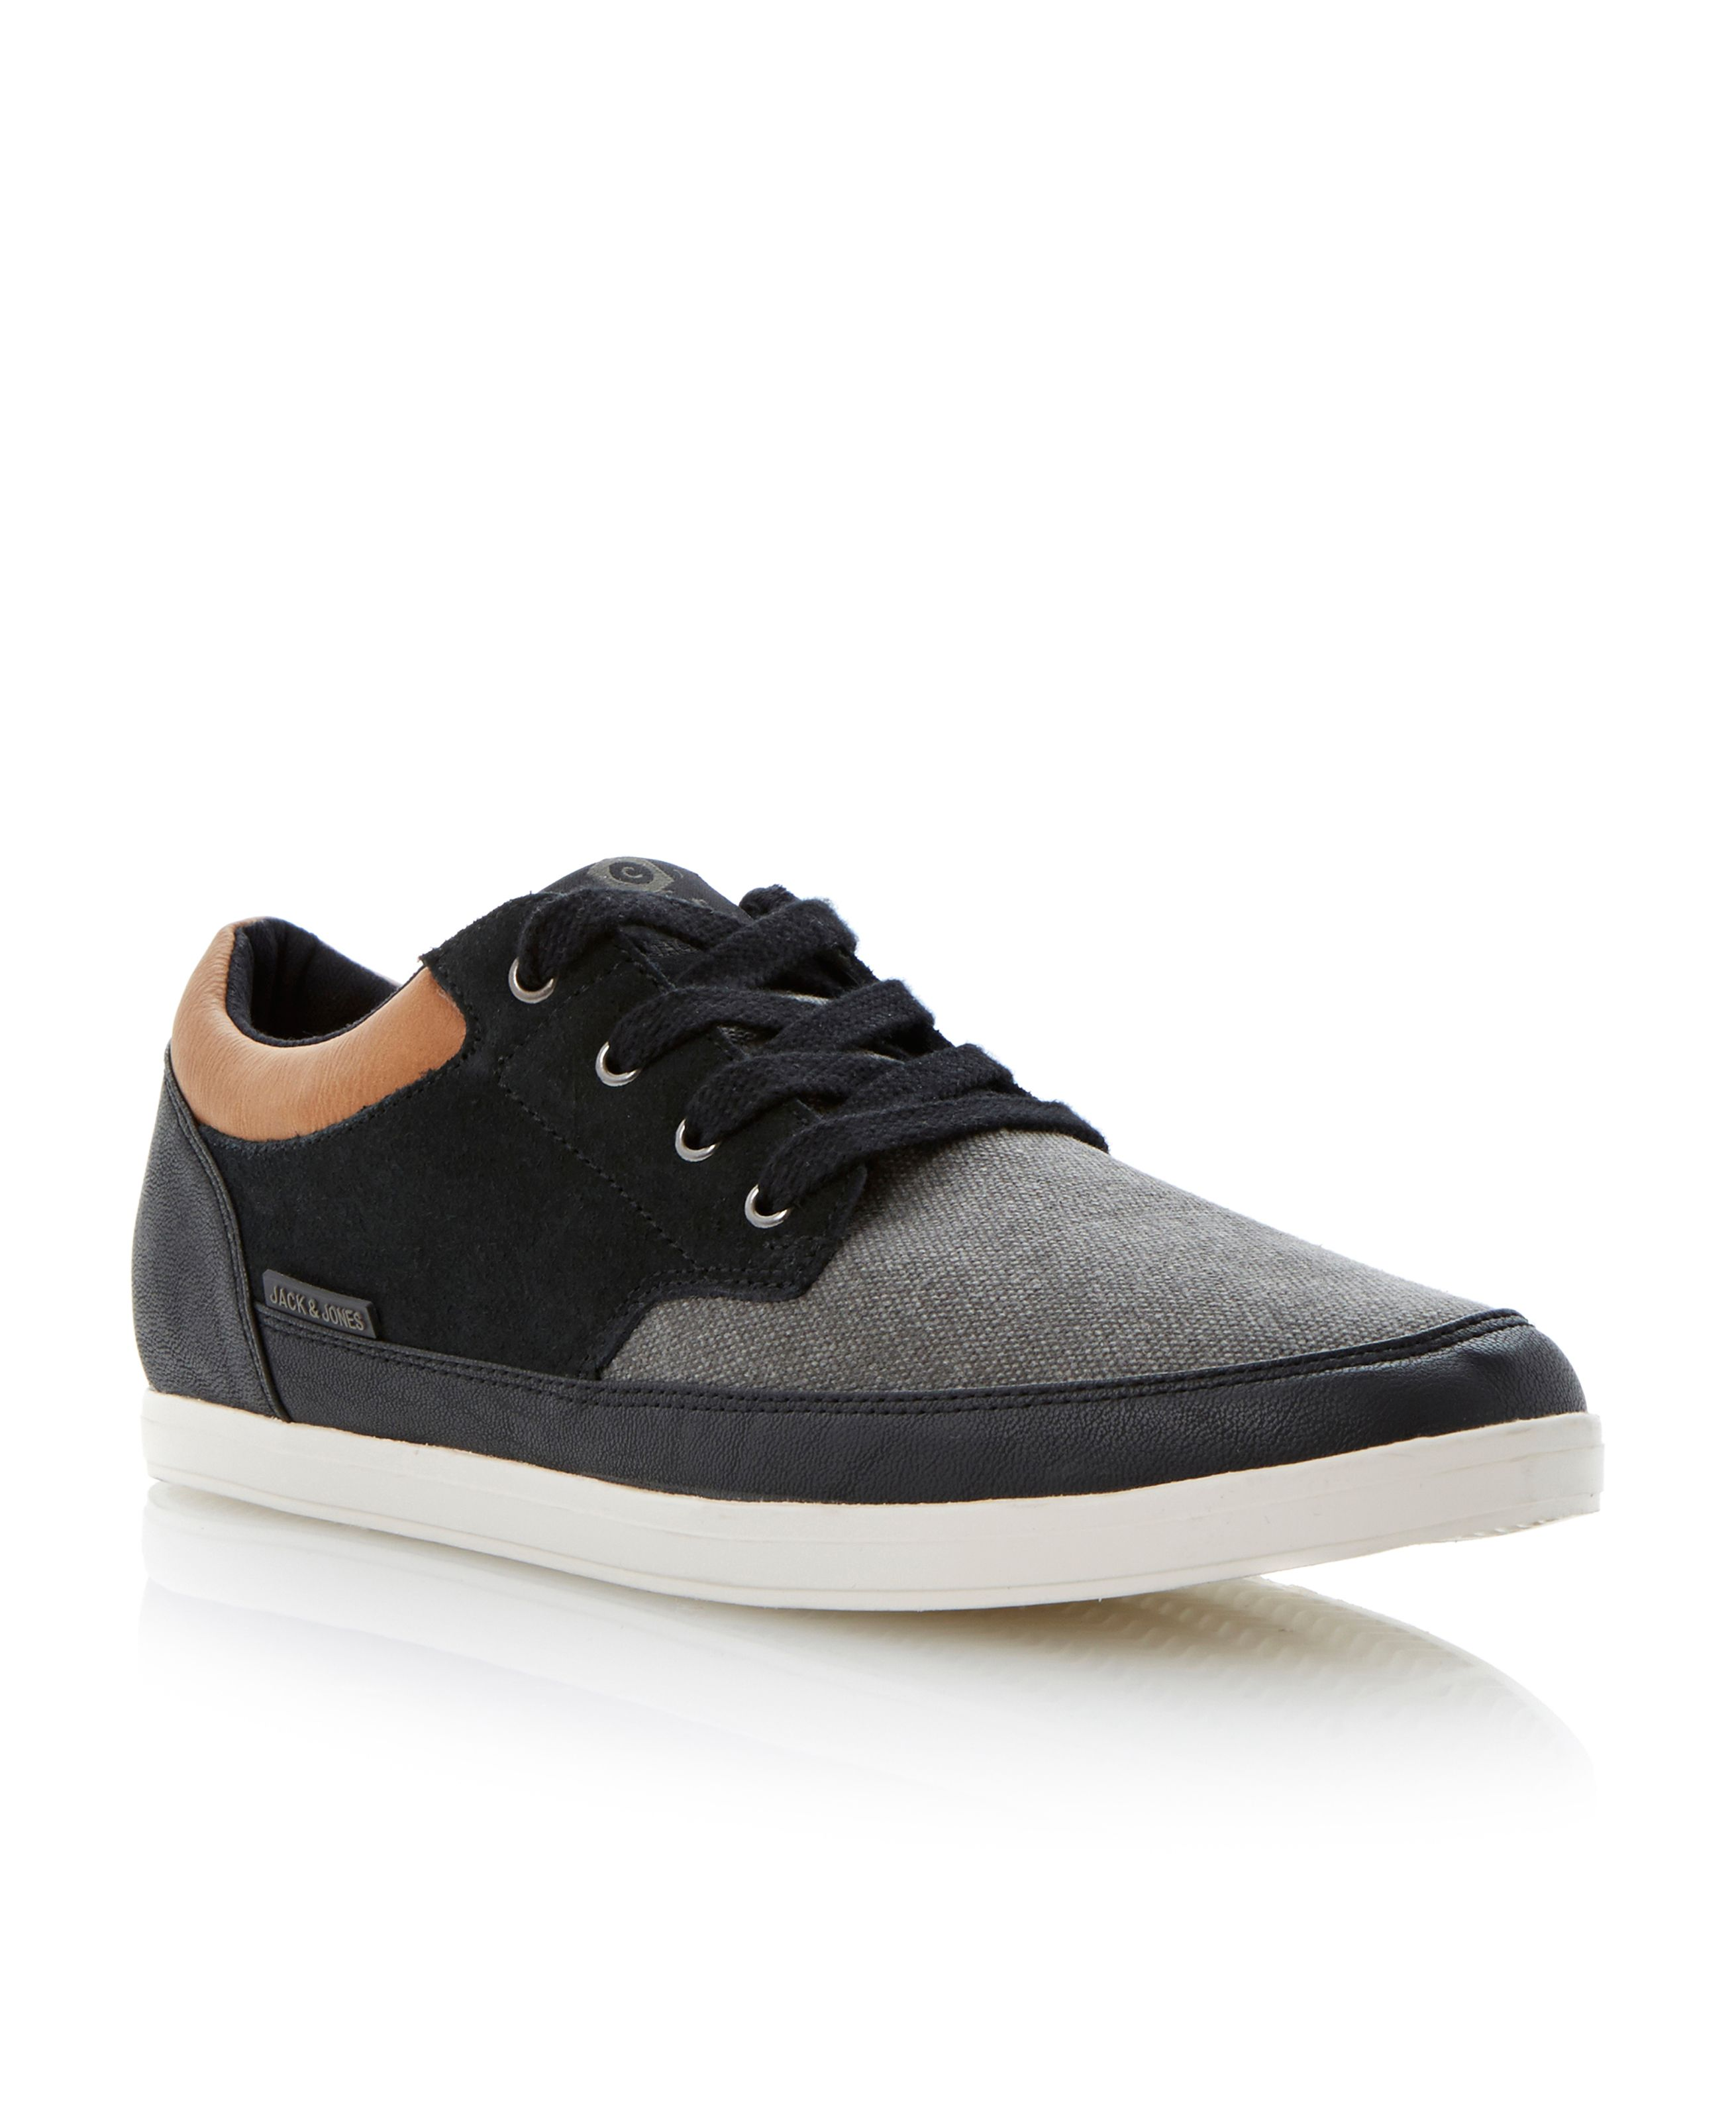 Jj brad core multi tone lace up trainers